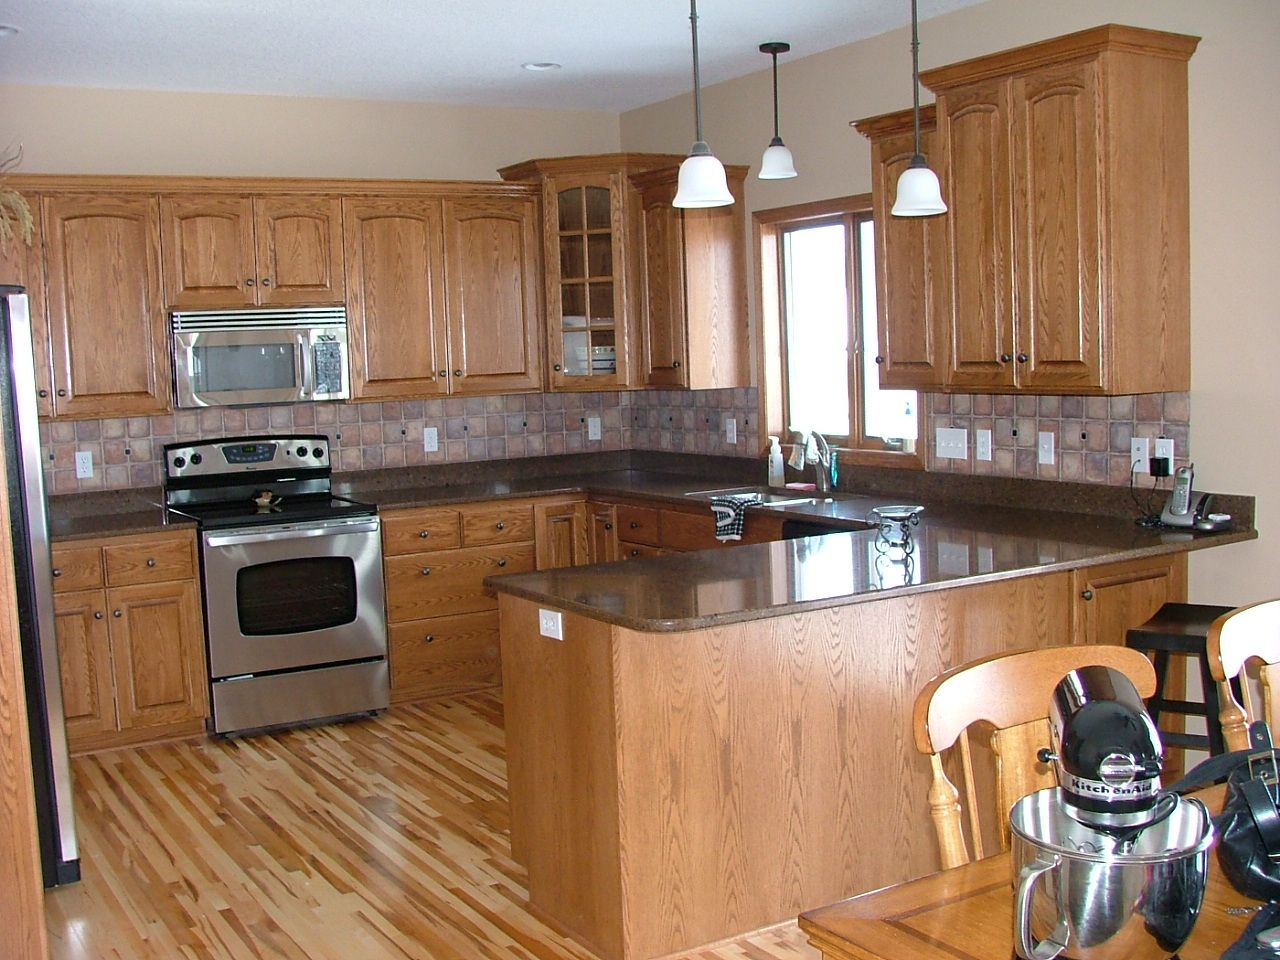 Wood Kitchen Countertops Black Cabinets Black Granite Counter Oak Hickory .oak Wood Kitchen Cabinet